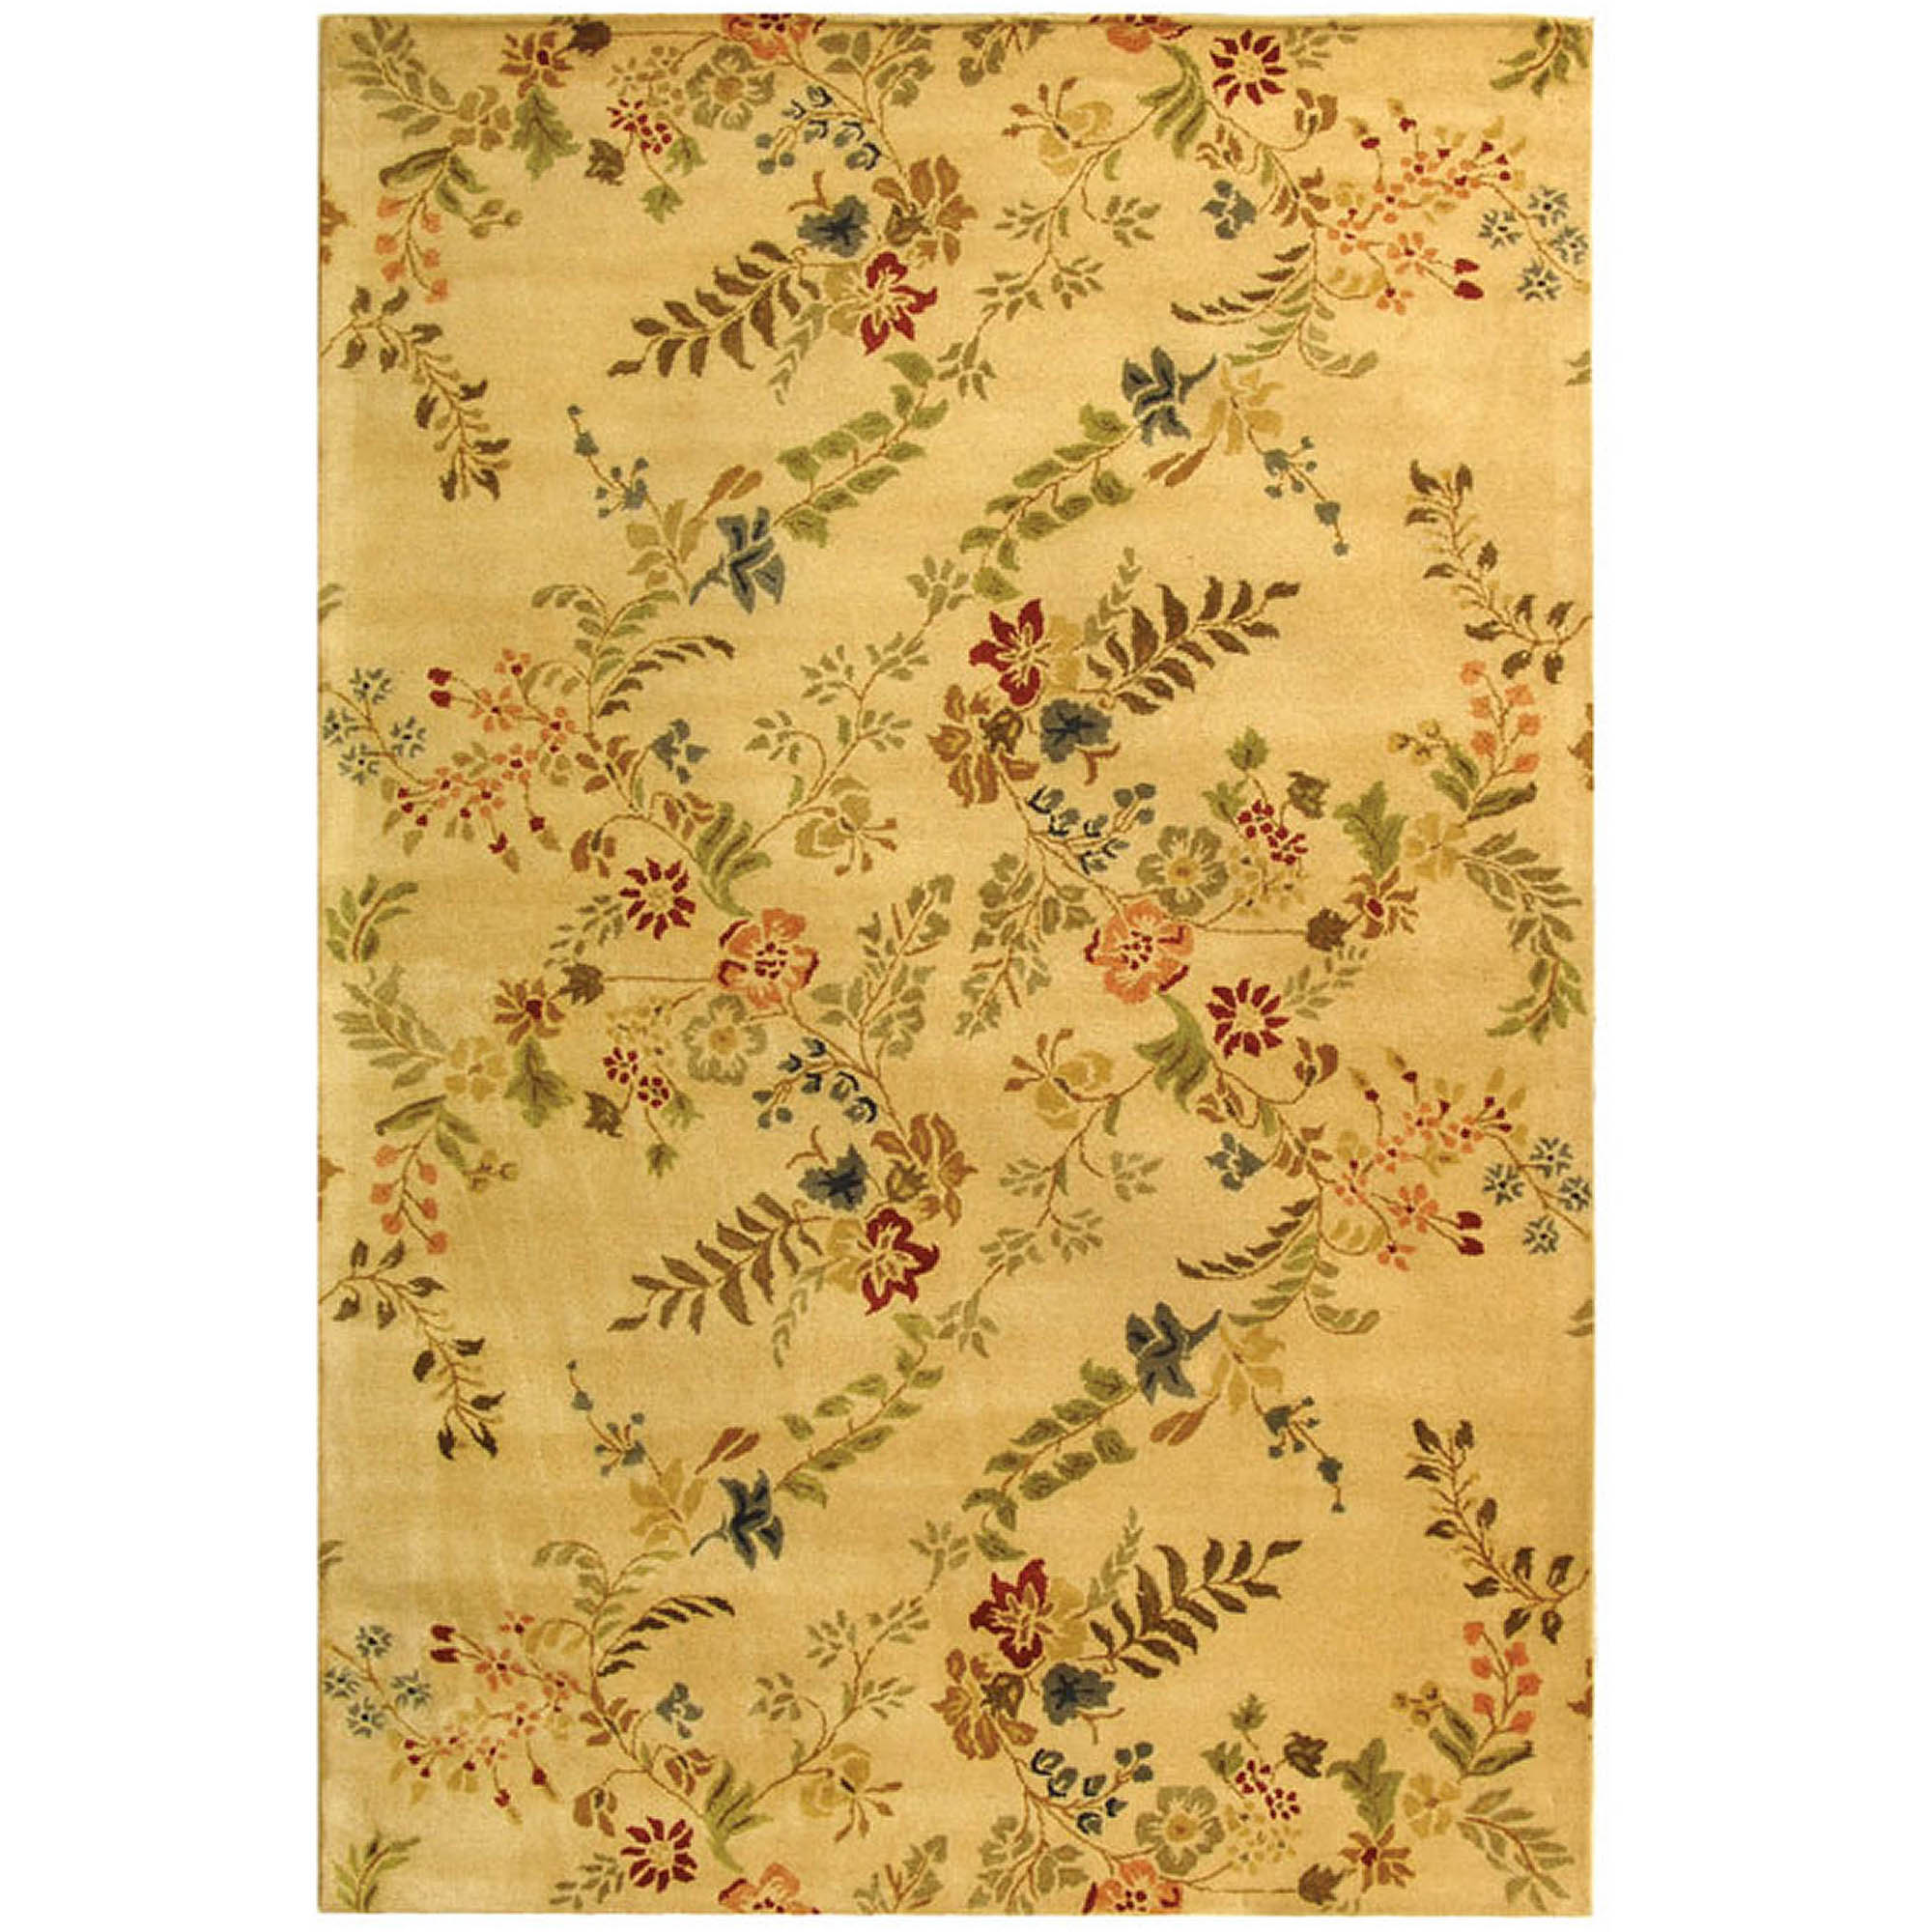 Safavieh Metro Norman Hand Tufted Wool Area Rug, Ivory and Multi-Colored